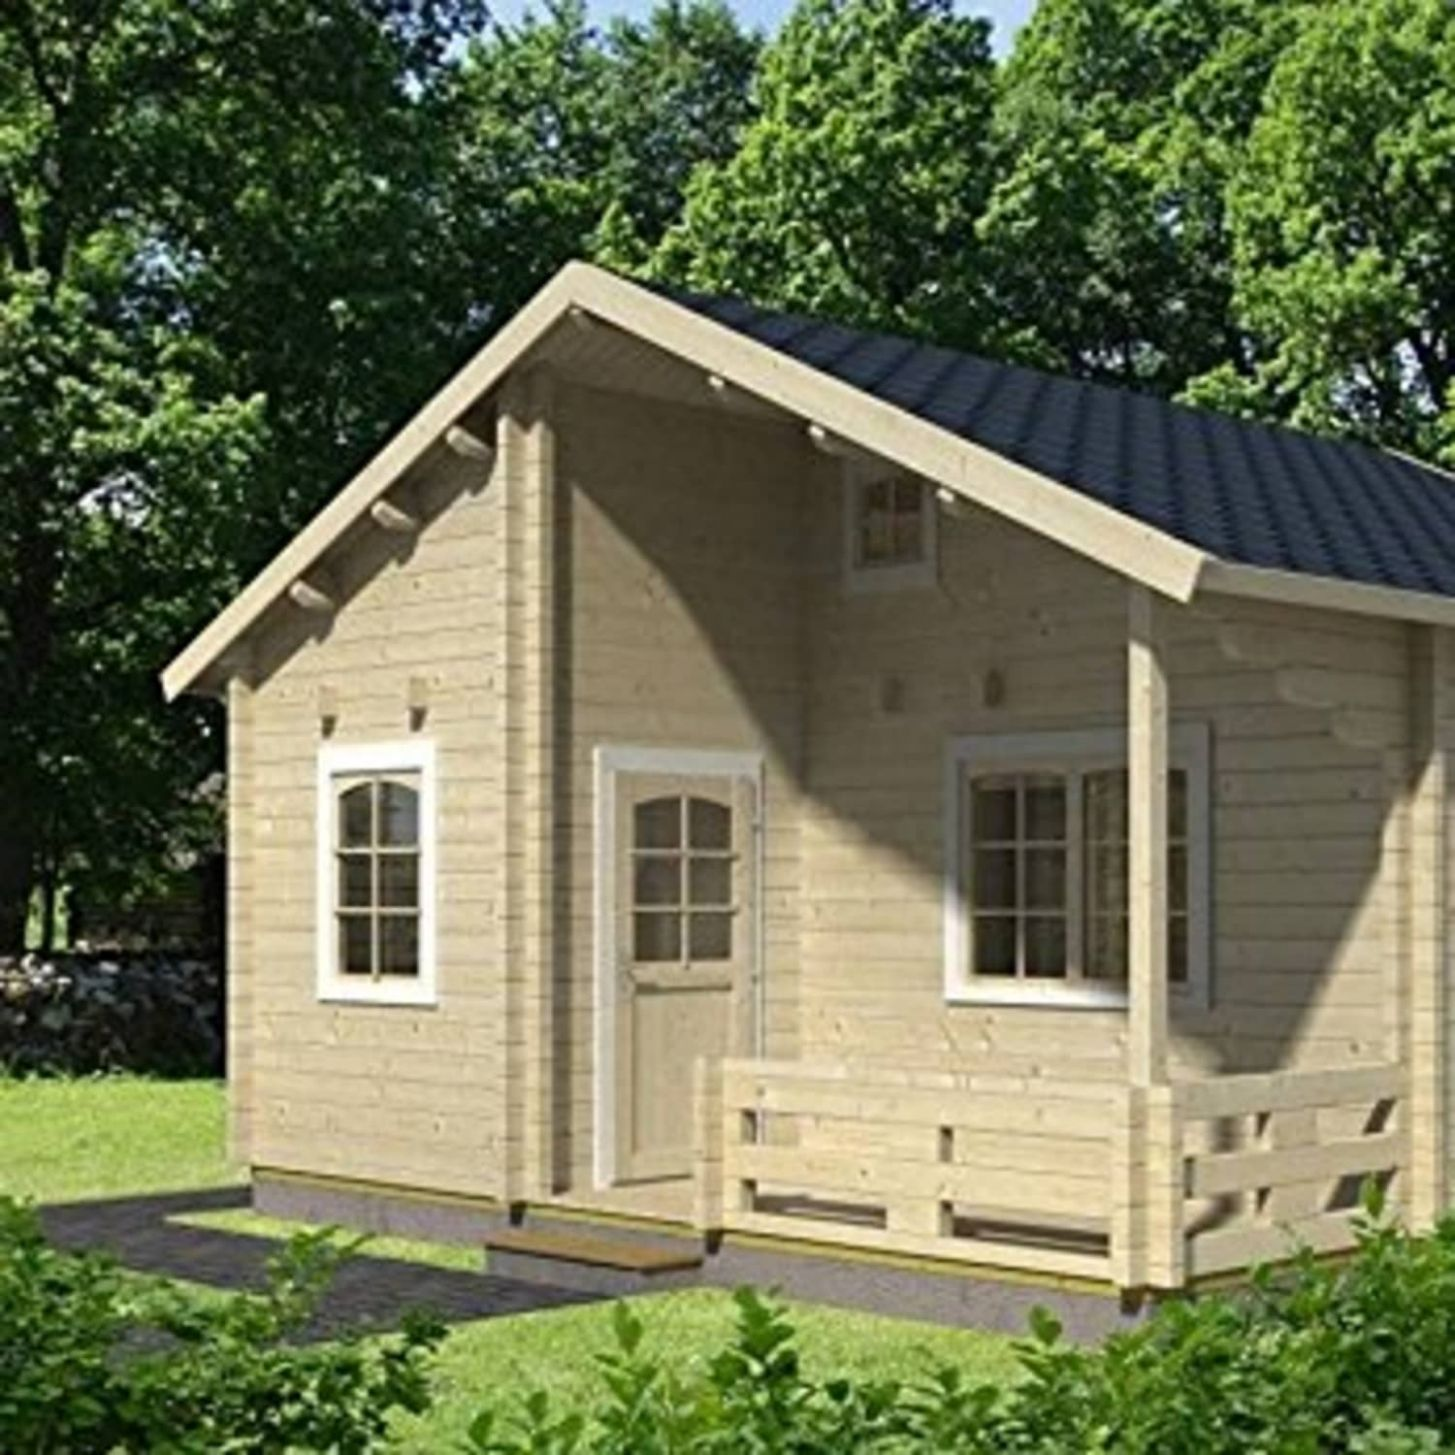 The Best (and Cheapest) Tiny House Kits On Amazon | Apartment Therapy - tiny house kits